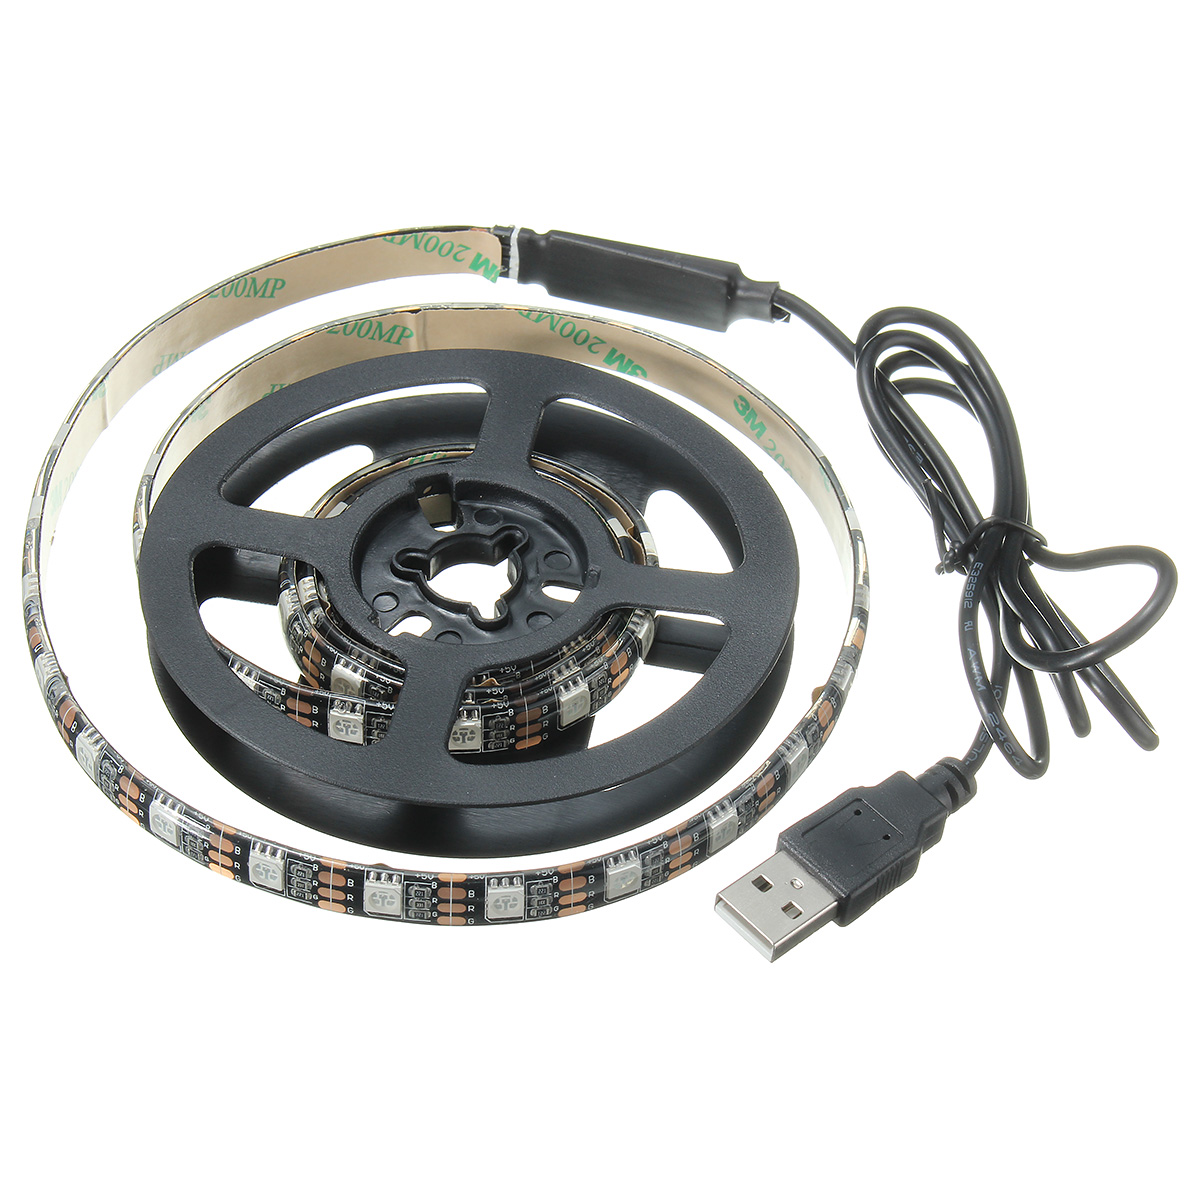 Waterproof 5050 USB Black TV PC Background RGB LED Strip Light Xmas Decor+ Remote DC5V